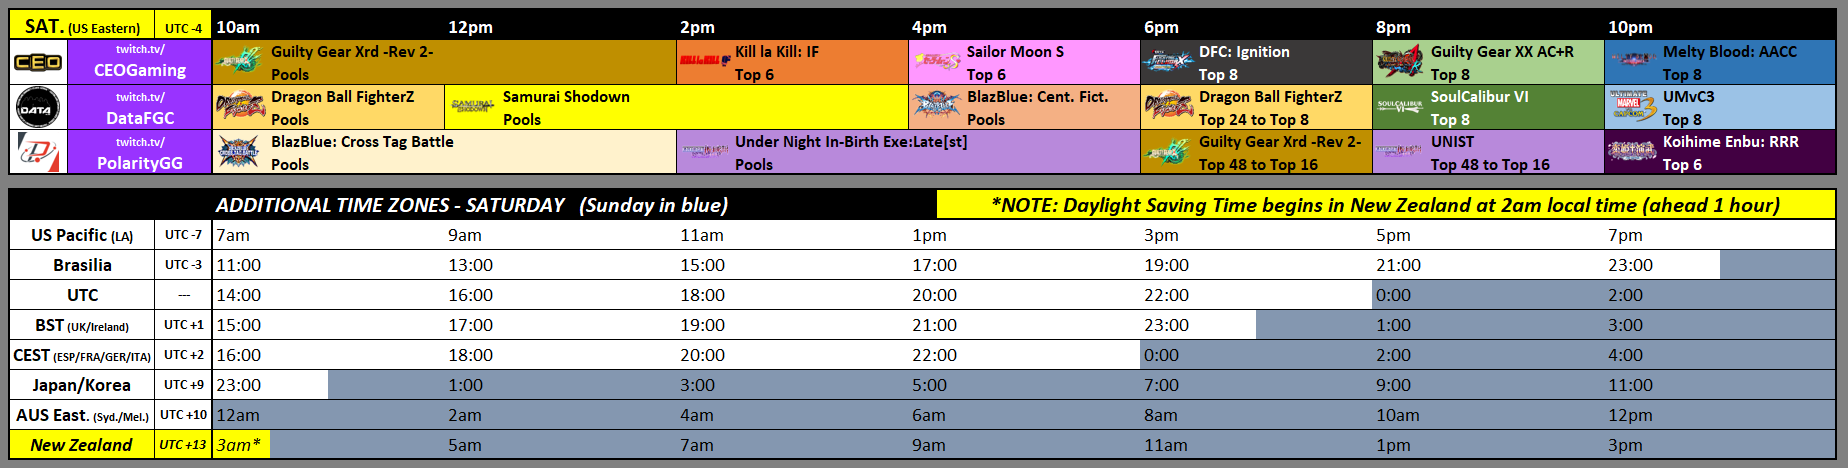 CEOtaku 2019 Event Schedule 1 out of 2 image gallery